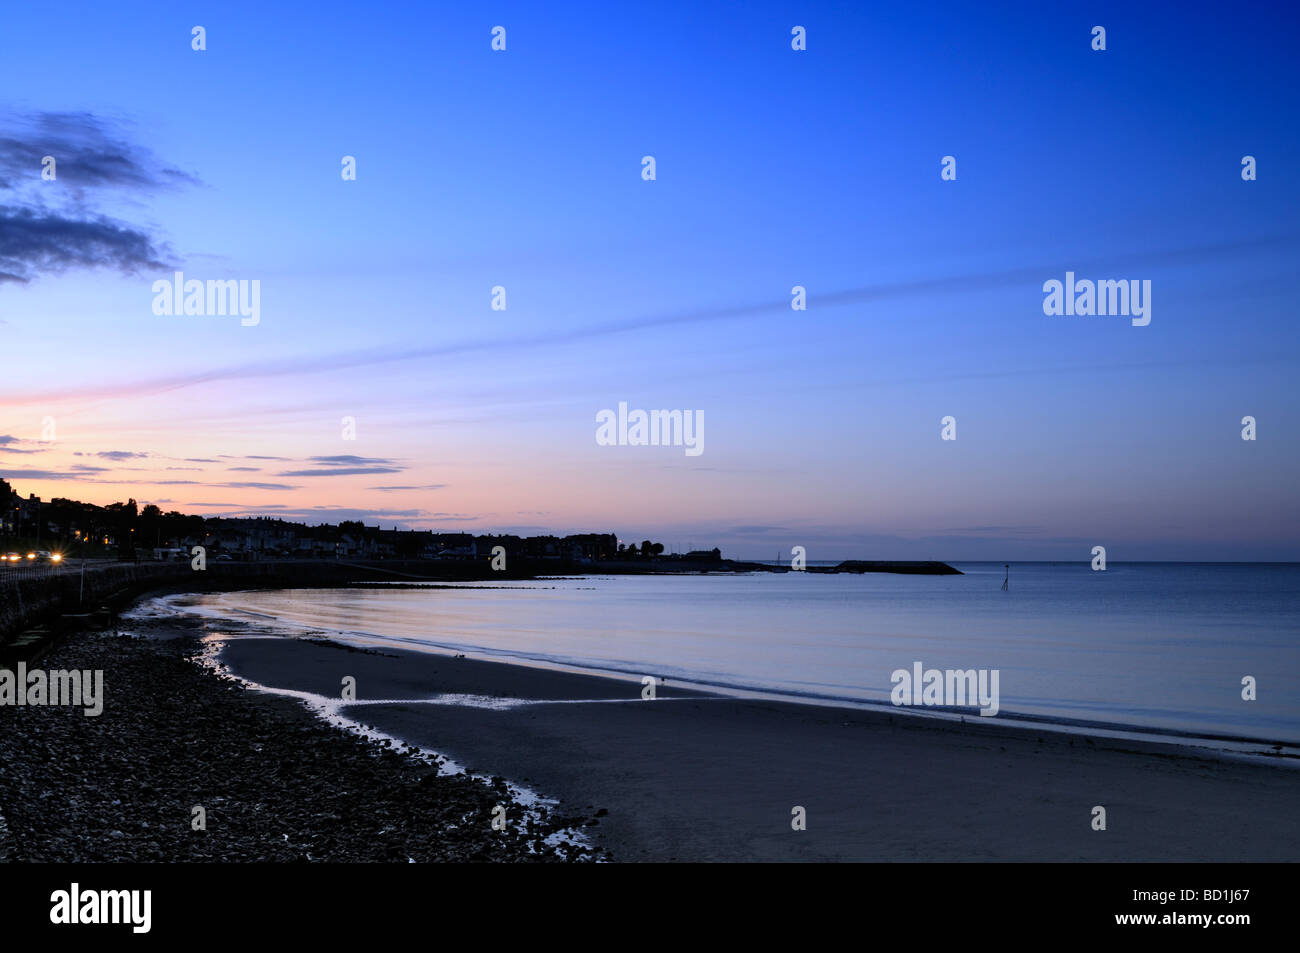 Colwyn Bay, a view towards Rhos on Sea, North Wales, United Kingdom. - Stock Image